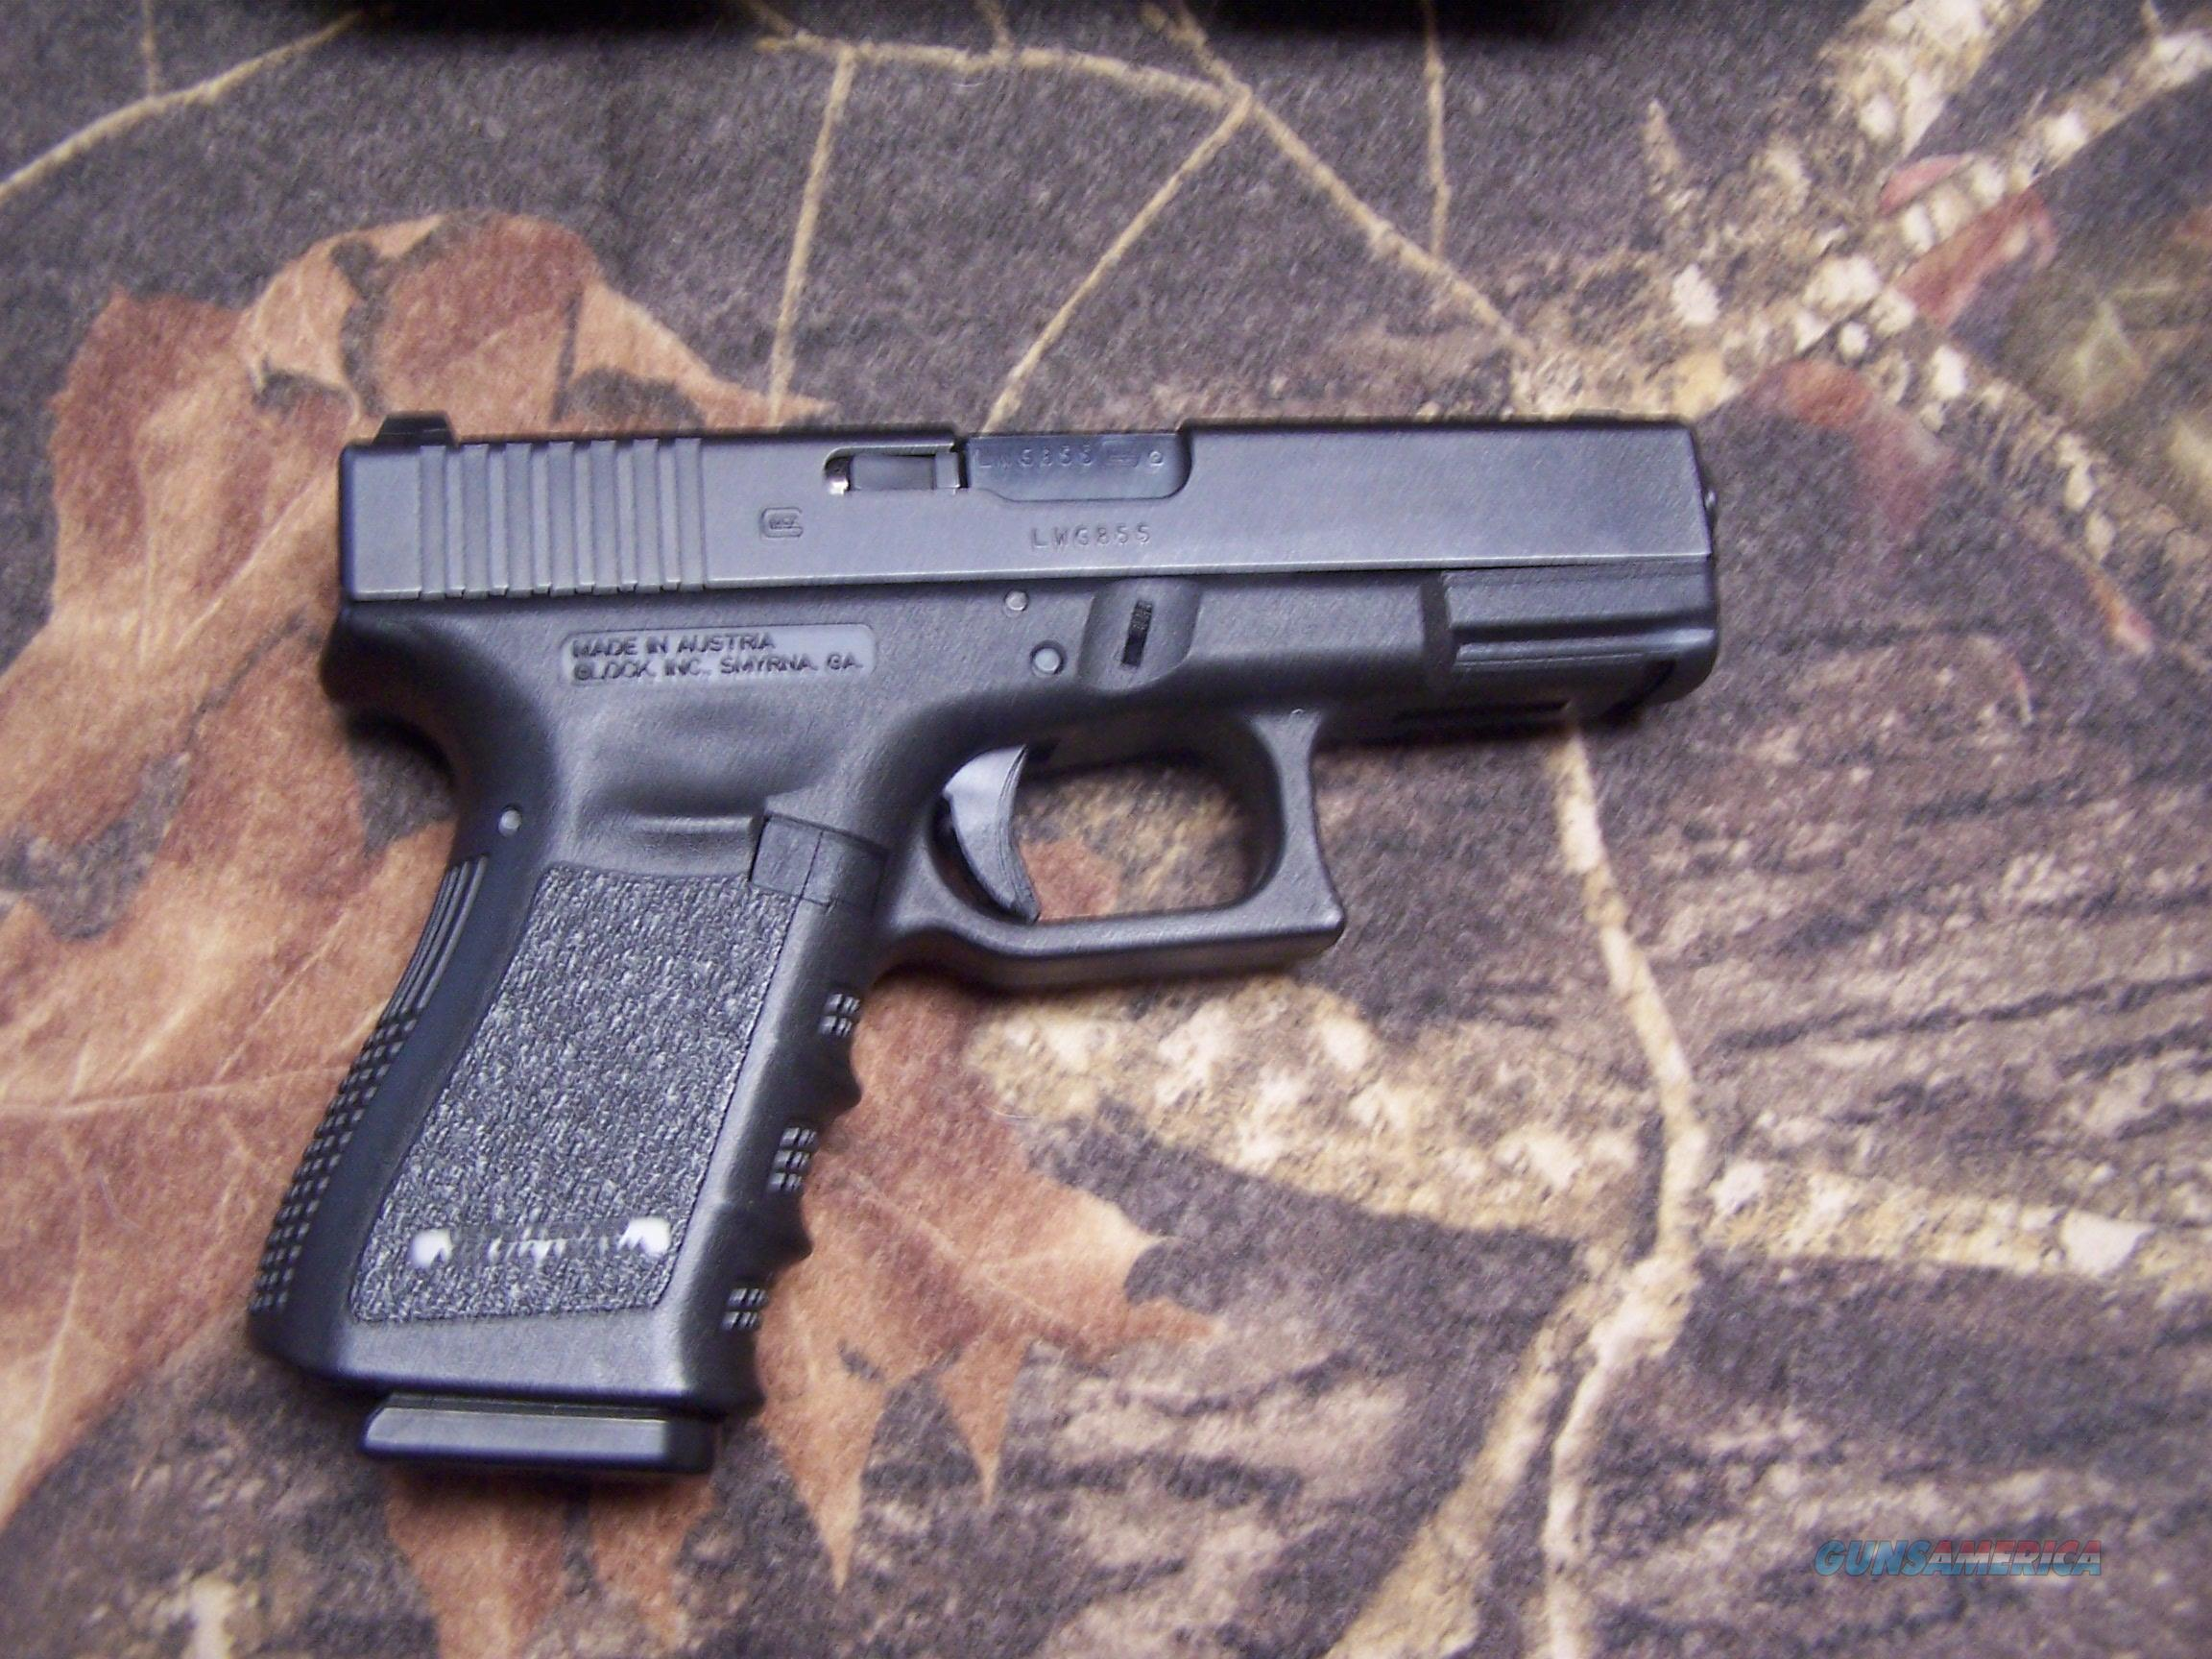 LEO Trade-In GEN 3 Glock 23 .40SW Handgun 13 rd. Includes 2 Glock mags. Very Good Condition. PRICE REDUCED!!!  Guns > Pistols > Glock Pistols > 23